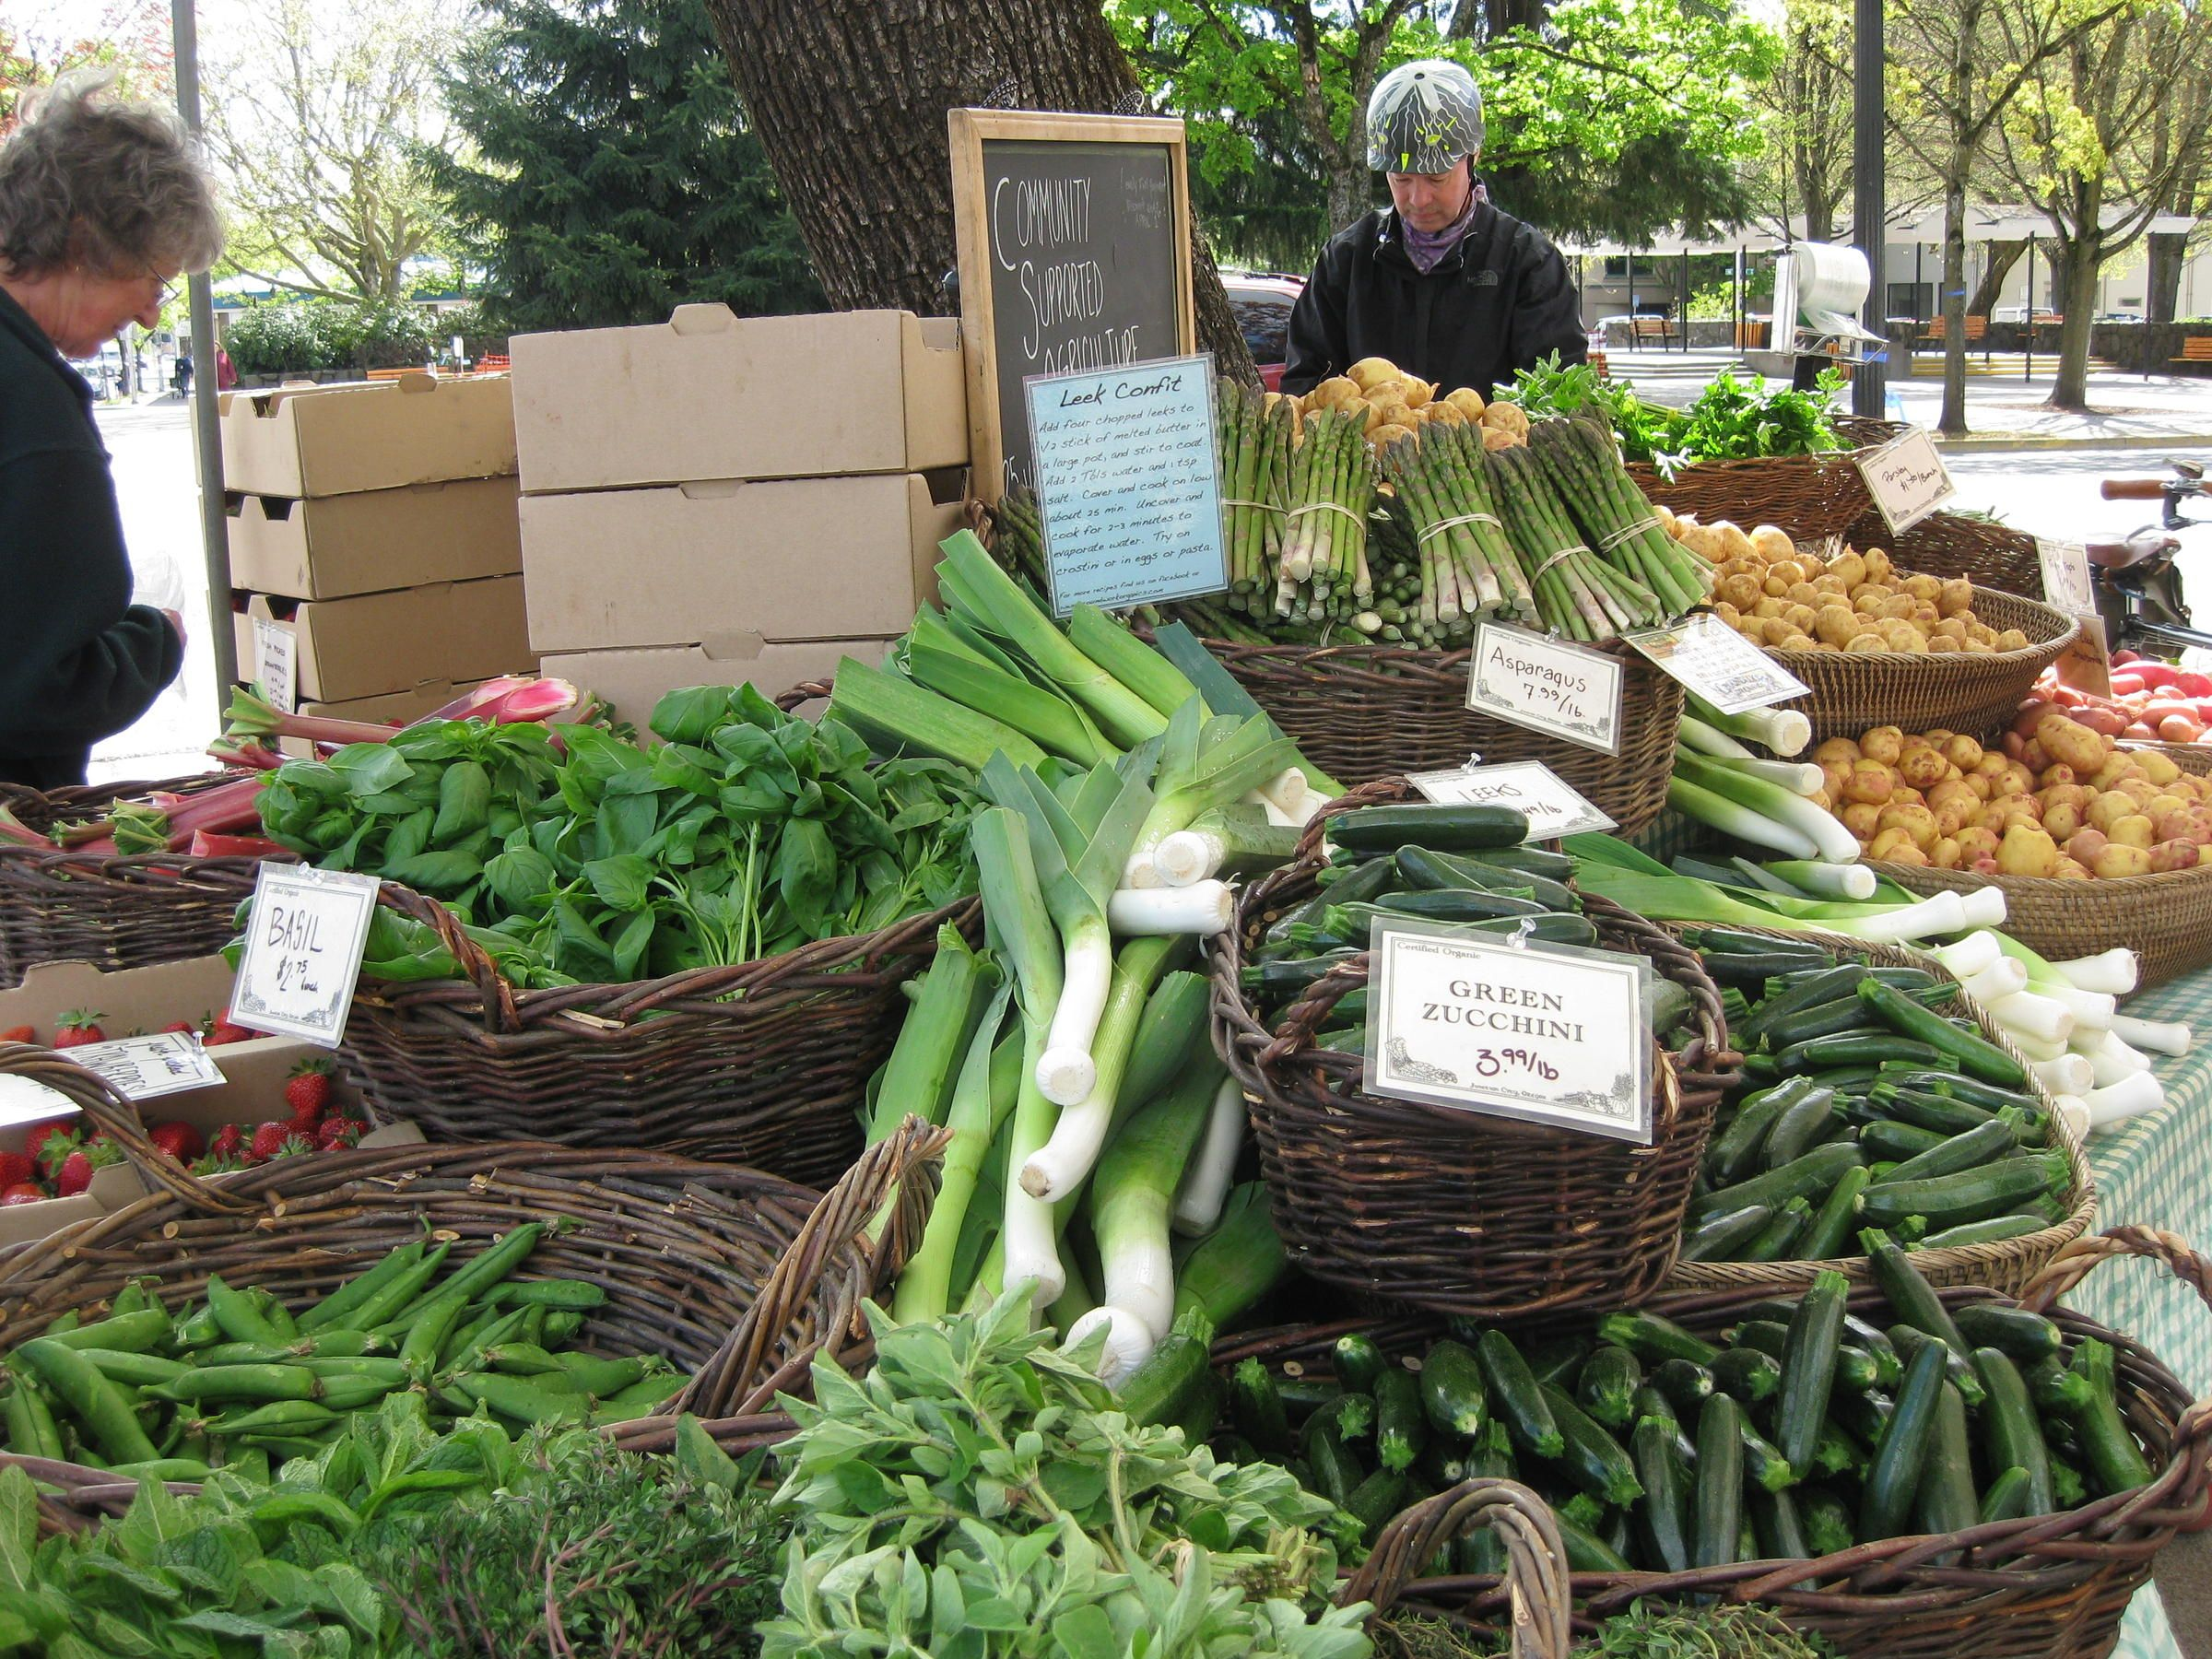 Eugene oregons lane county farmers market is one of the